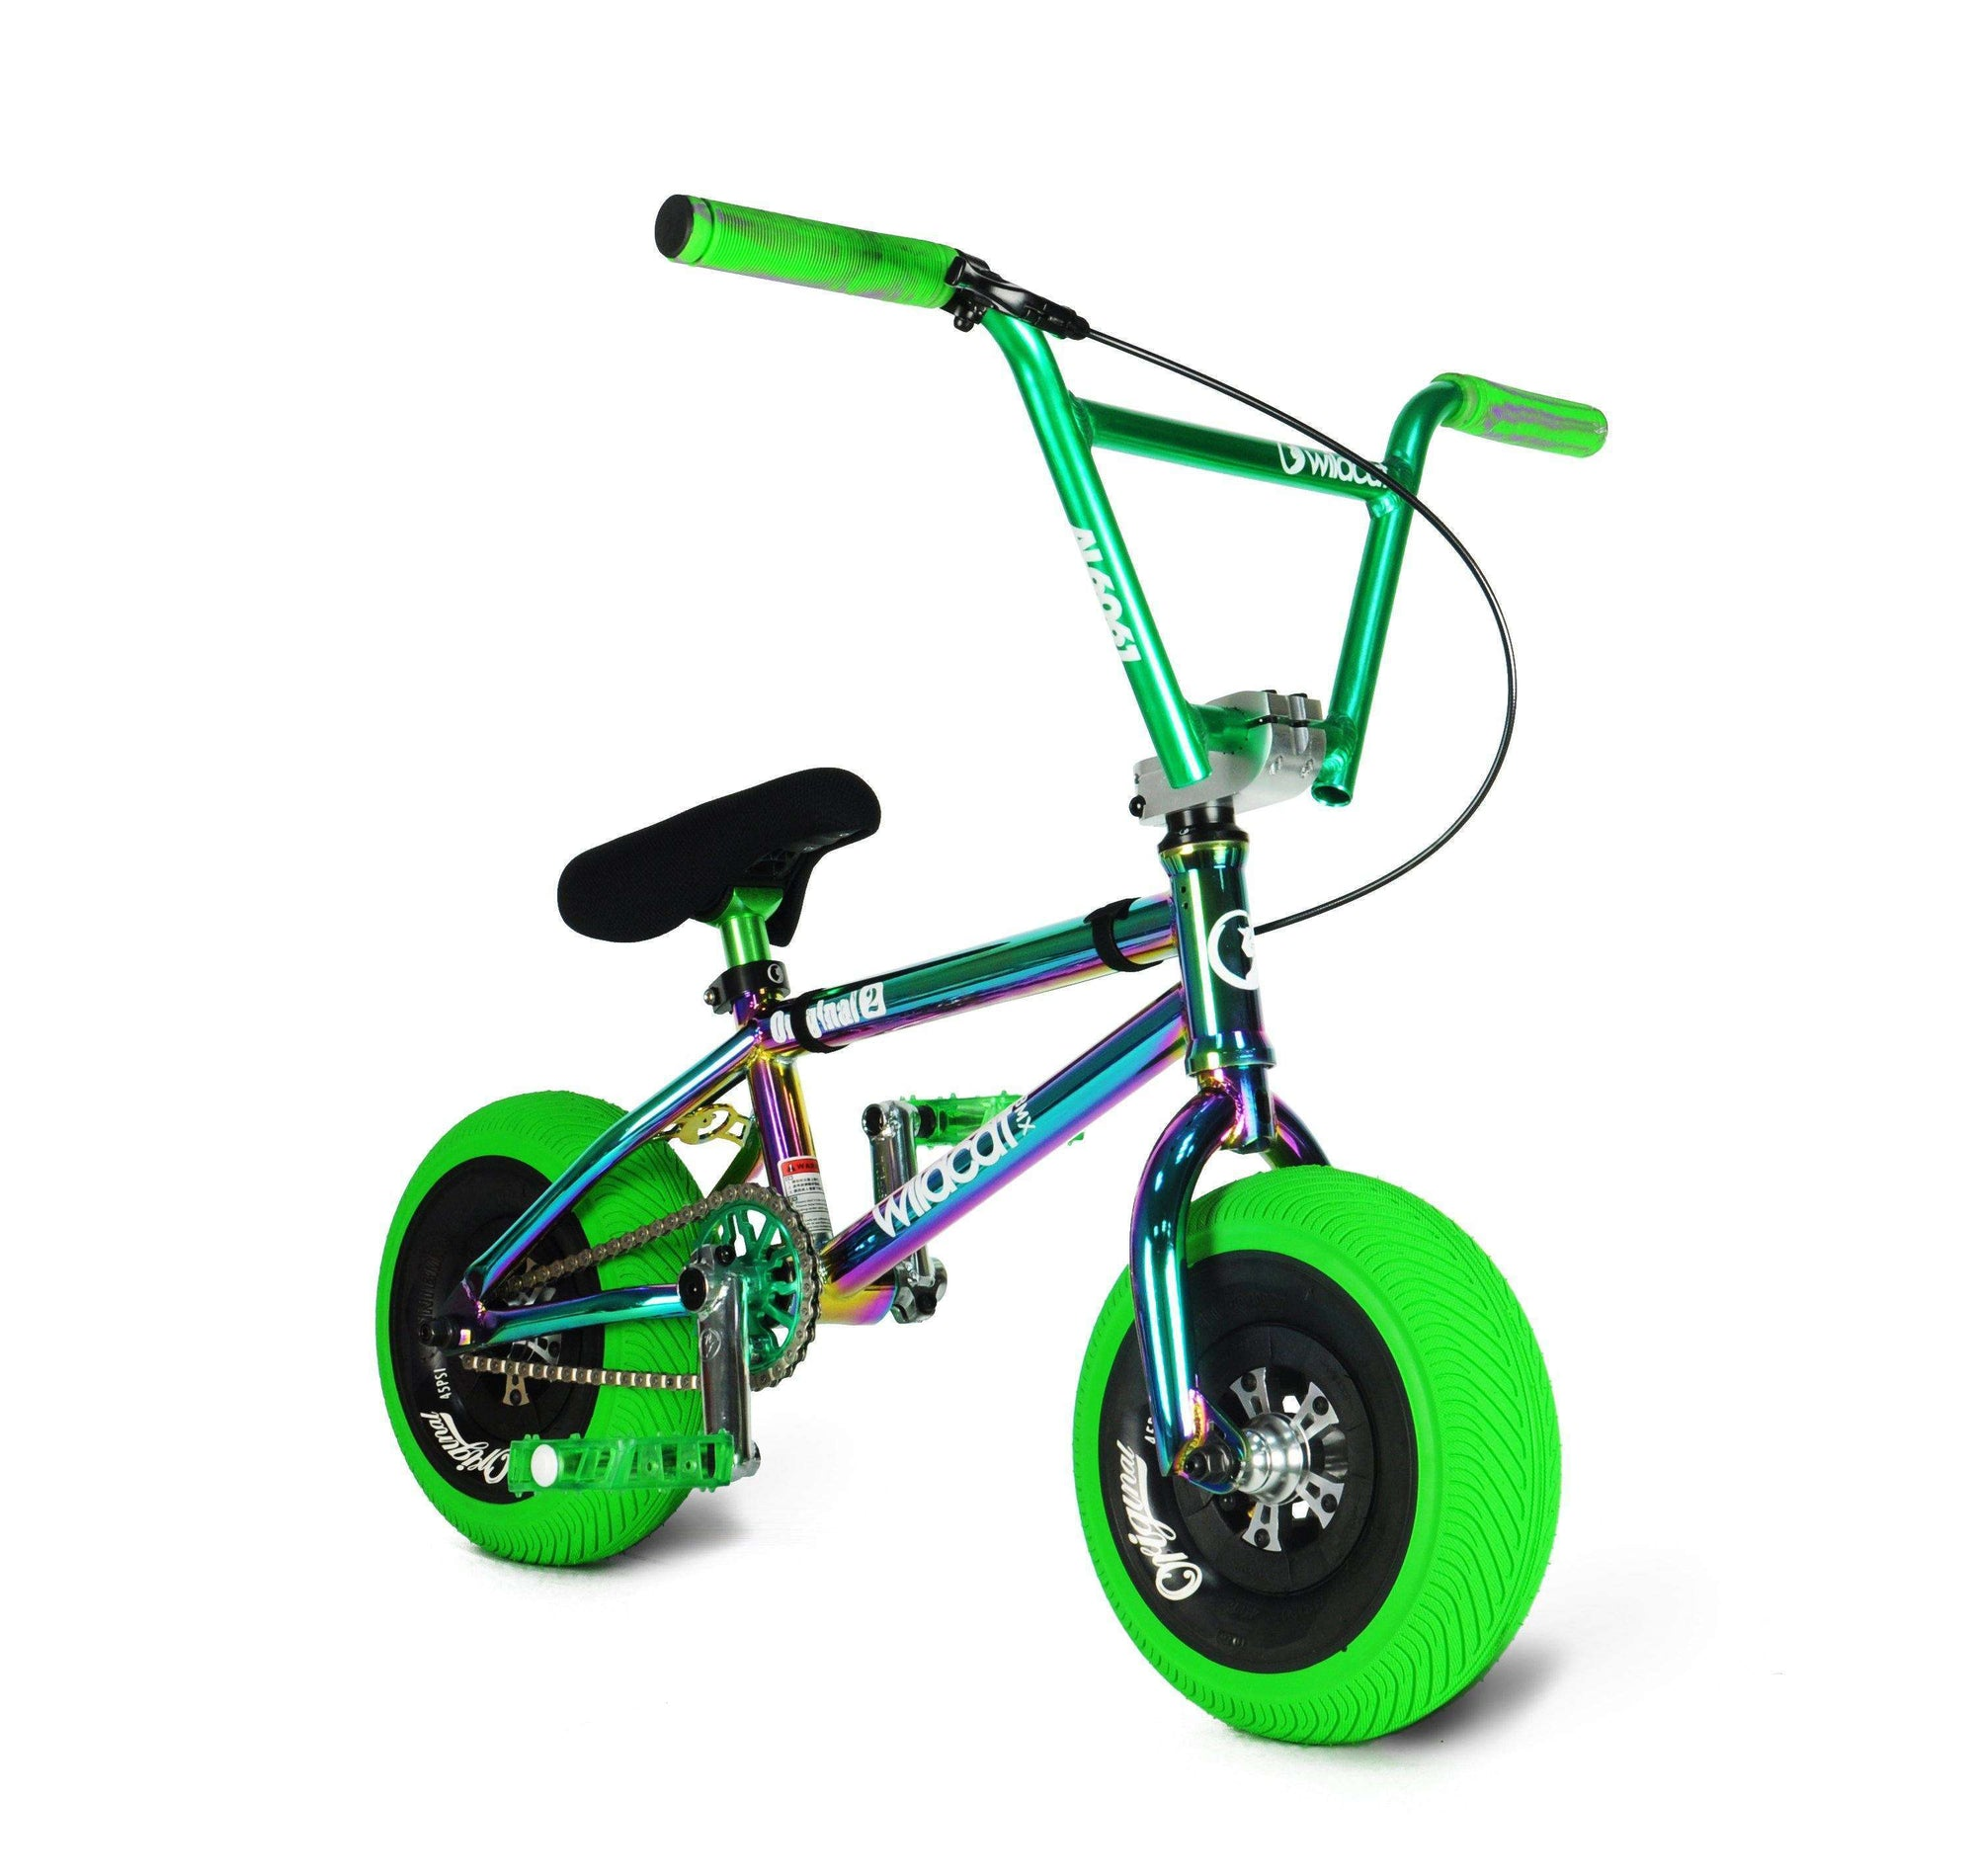 Pro Series Joker Green - FREE Disc Brake & Pro Turbo Wheel Mini BMX Wildcat Mini BMX Disc Brakes